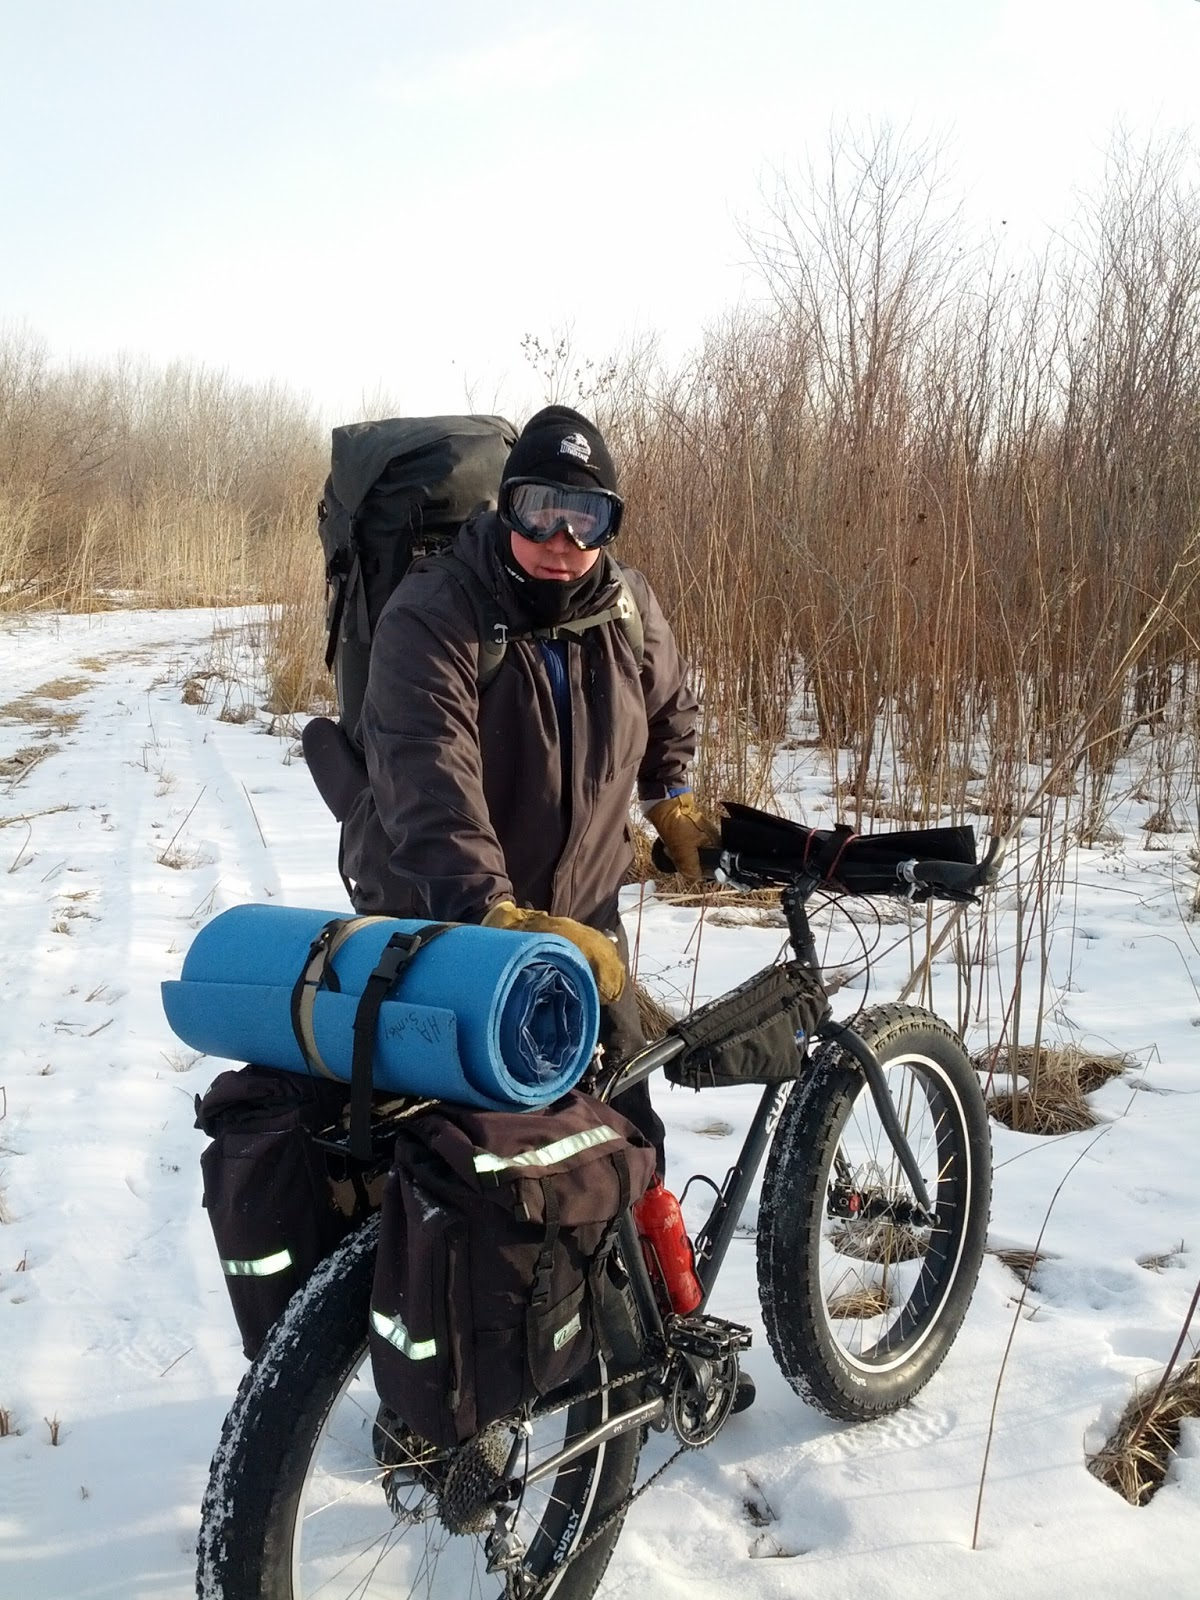 Heathstroke Winter Bike Packing Comfort In The Cold